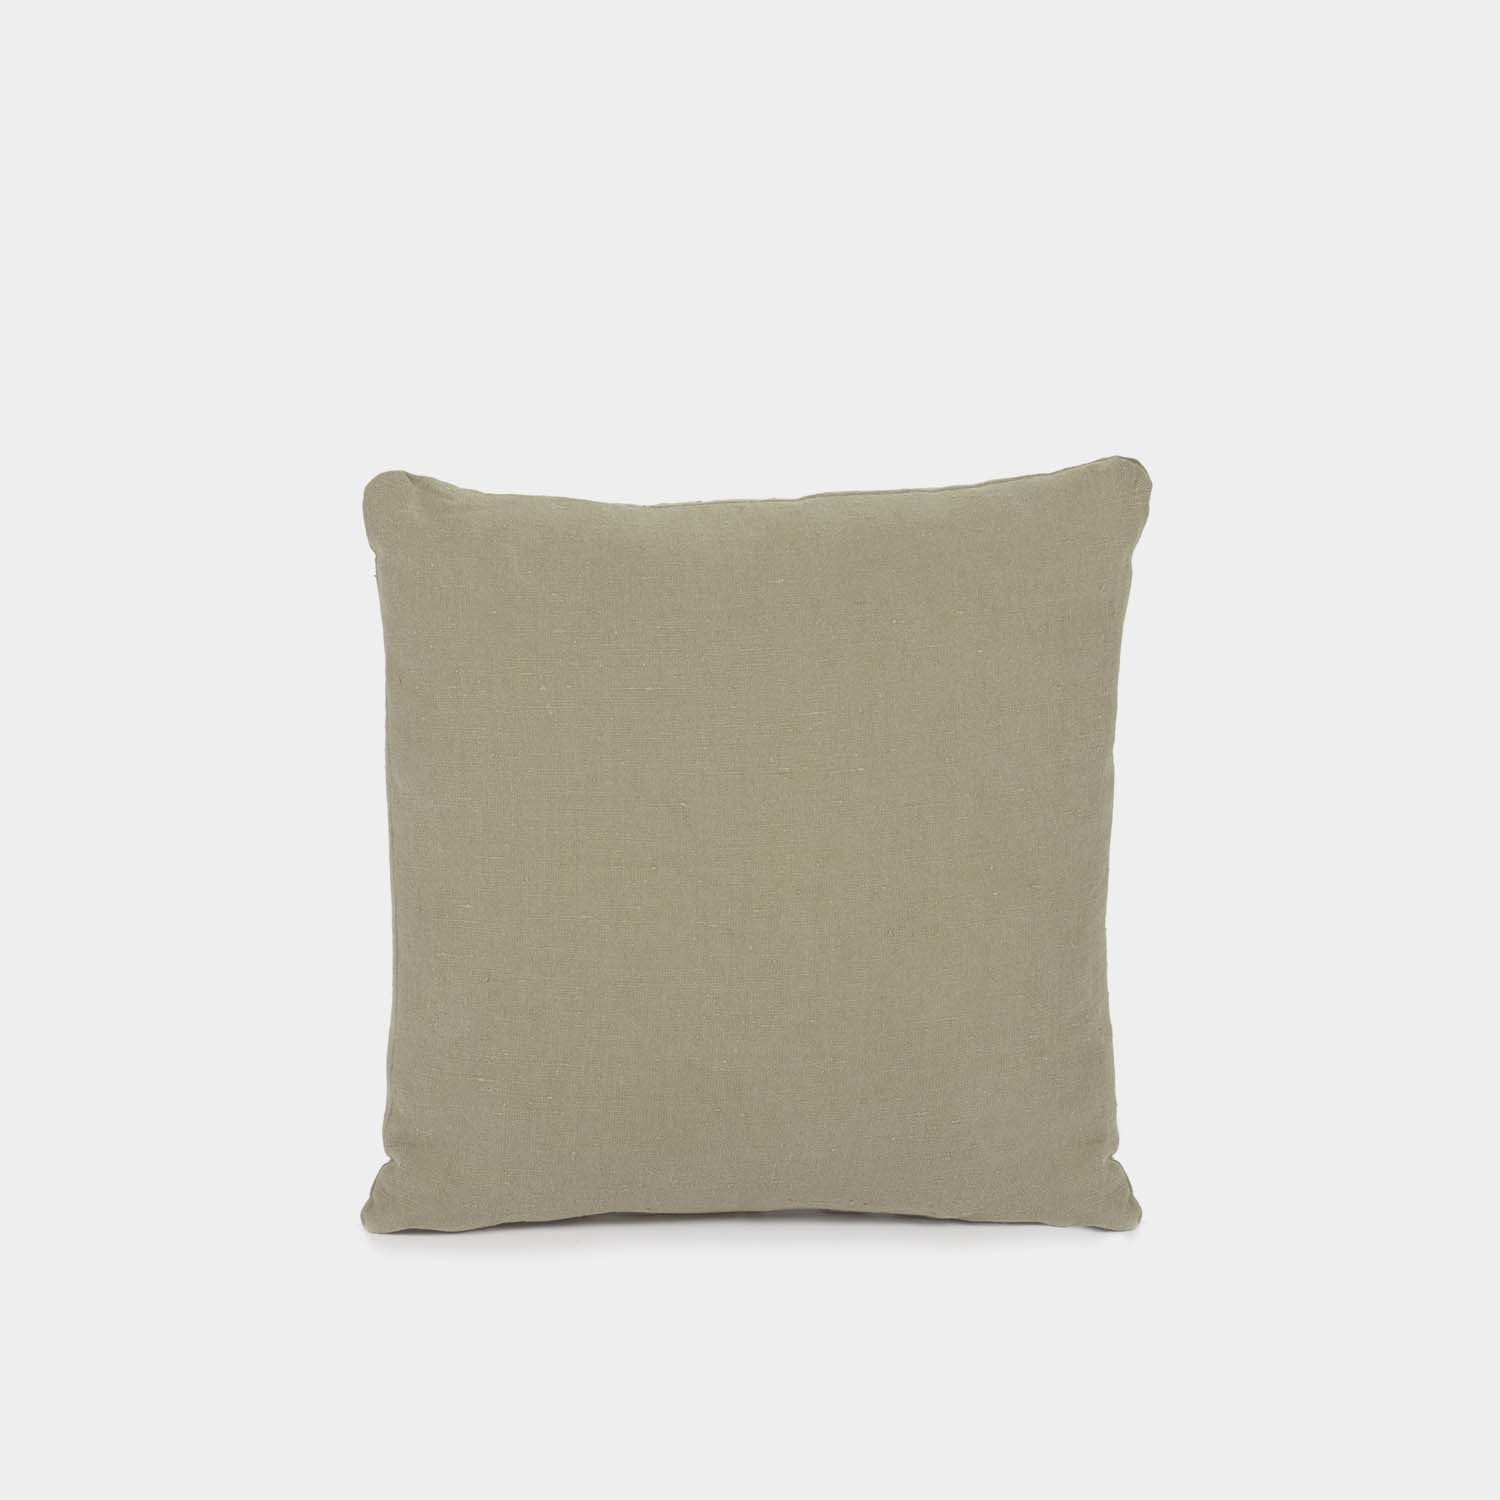 Decorative Cushion, Square, Olive Linen